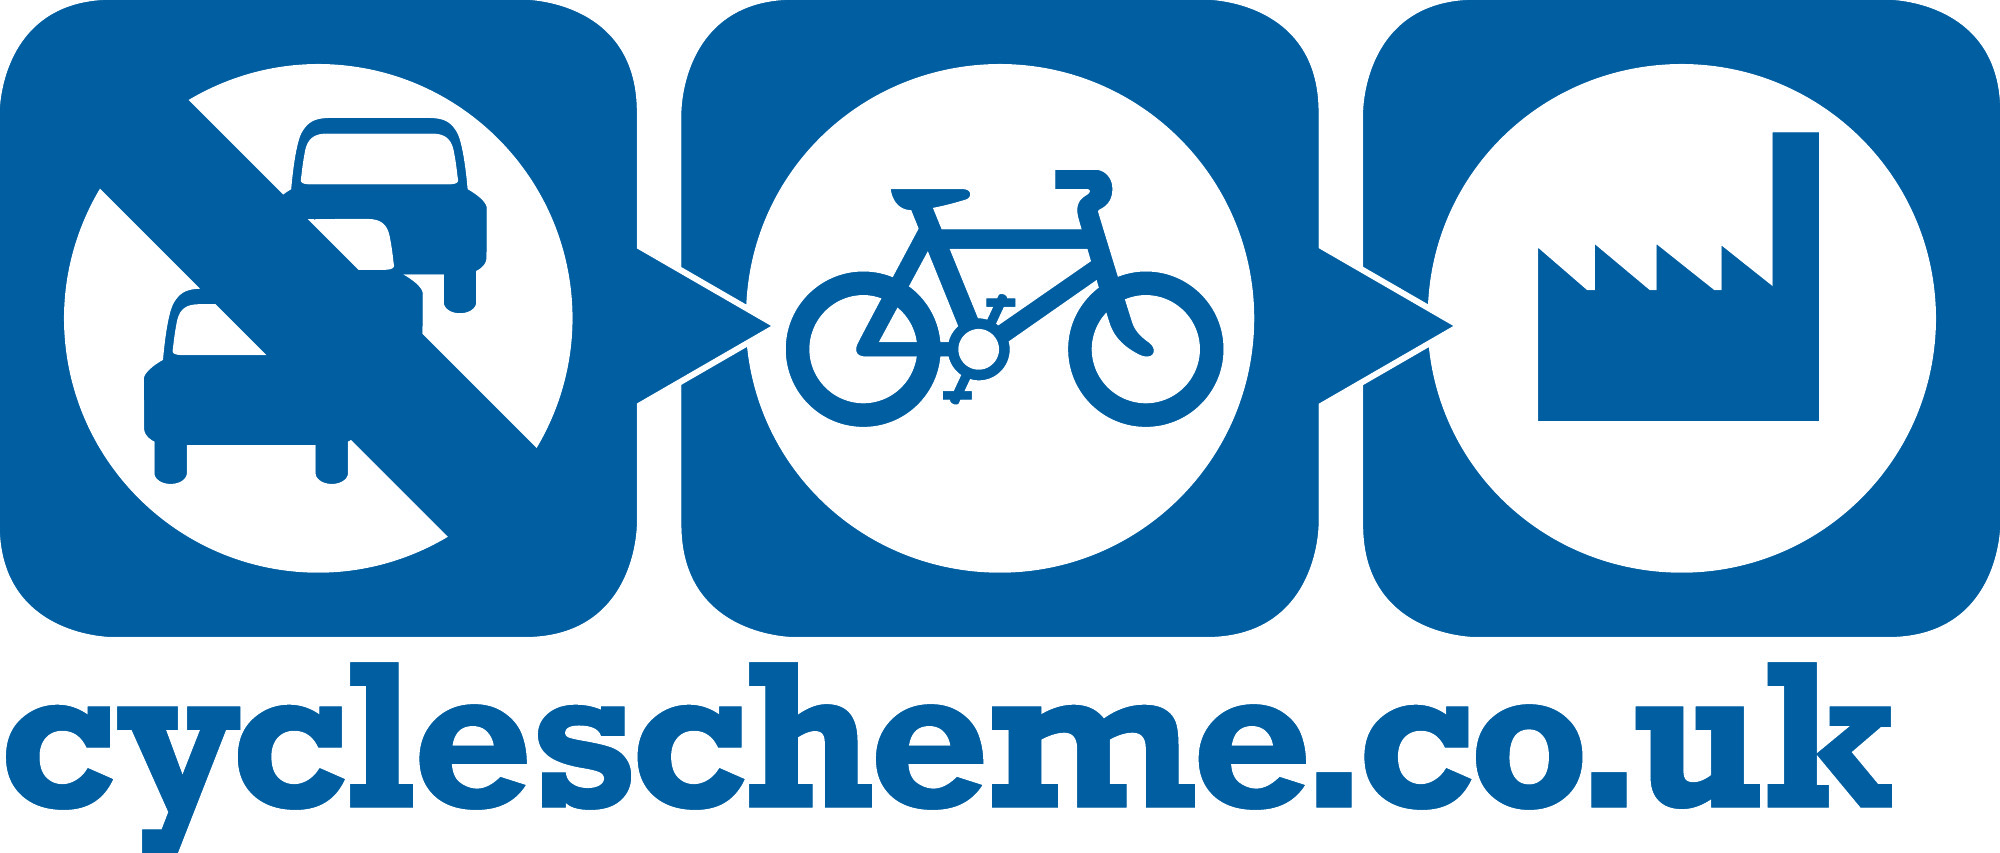 Cycle to work scheme at Sussed Out Suspension